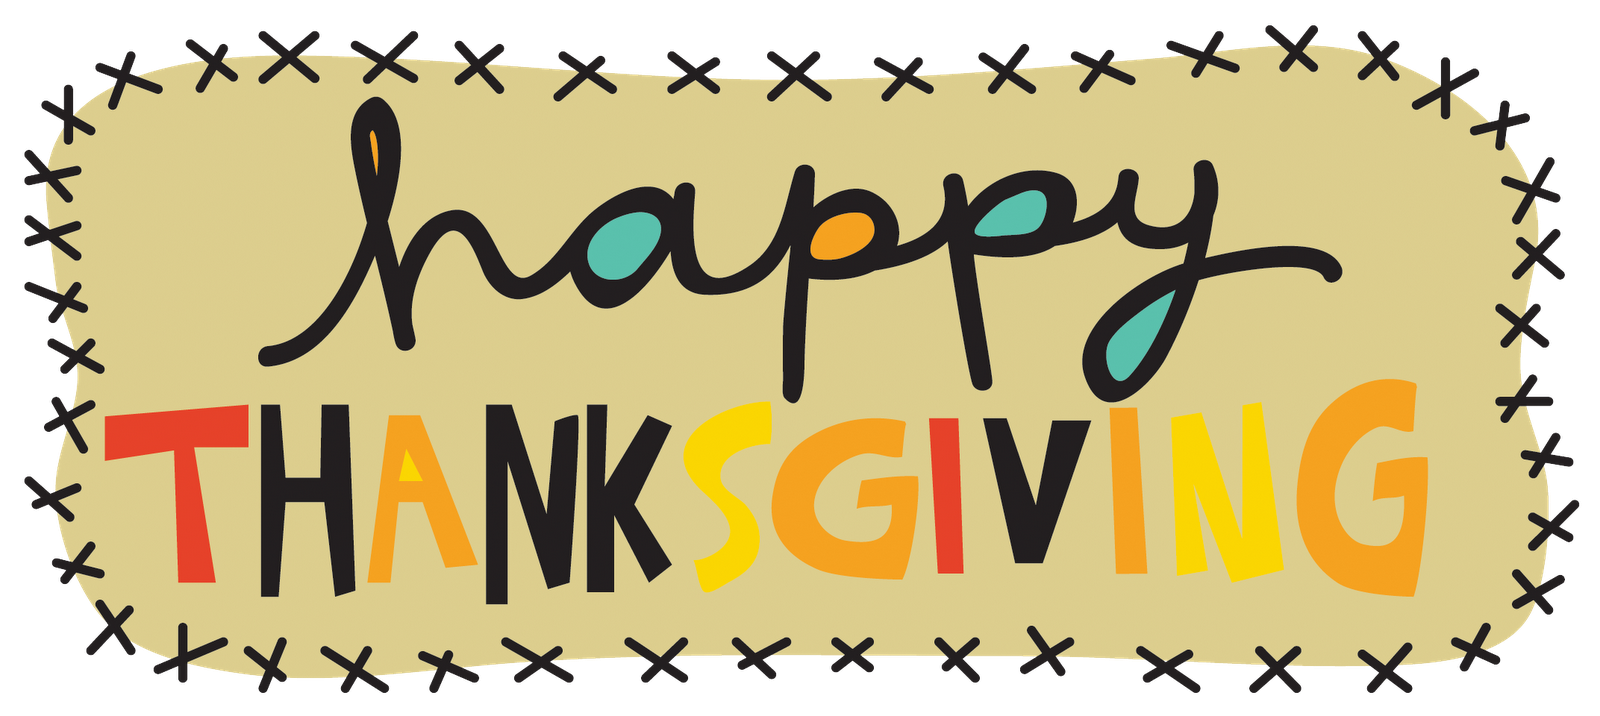 Free clipart welcome for thanksgiving jpg transparent download Let Us Help You Perfect Your Thanksgiving jpg transparent download